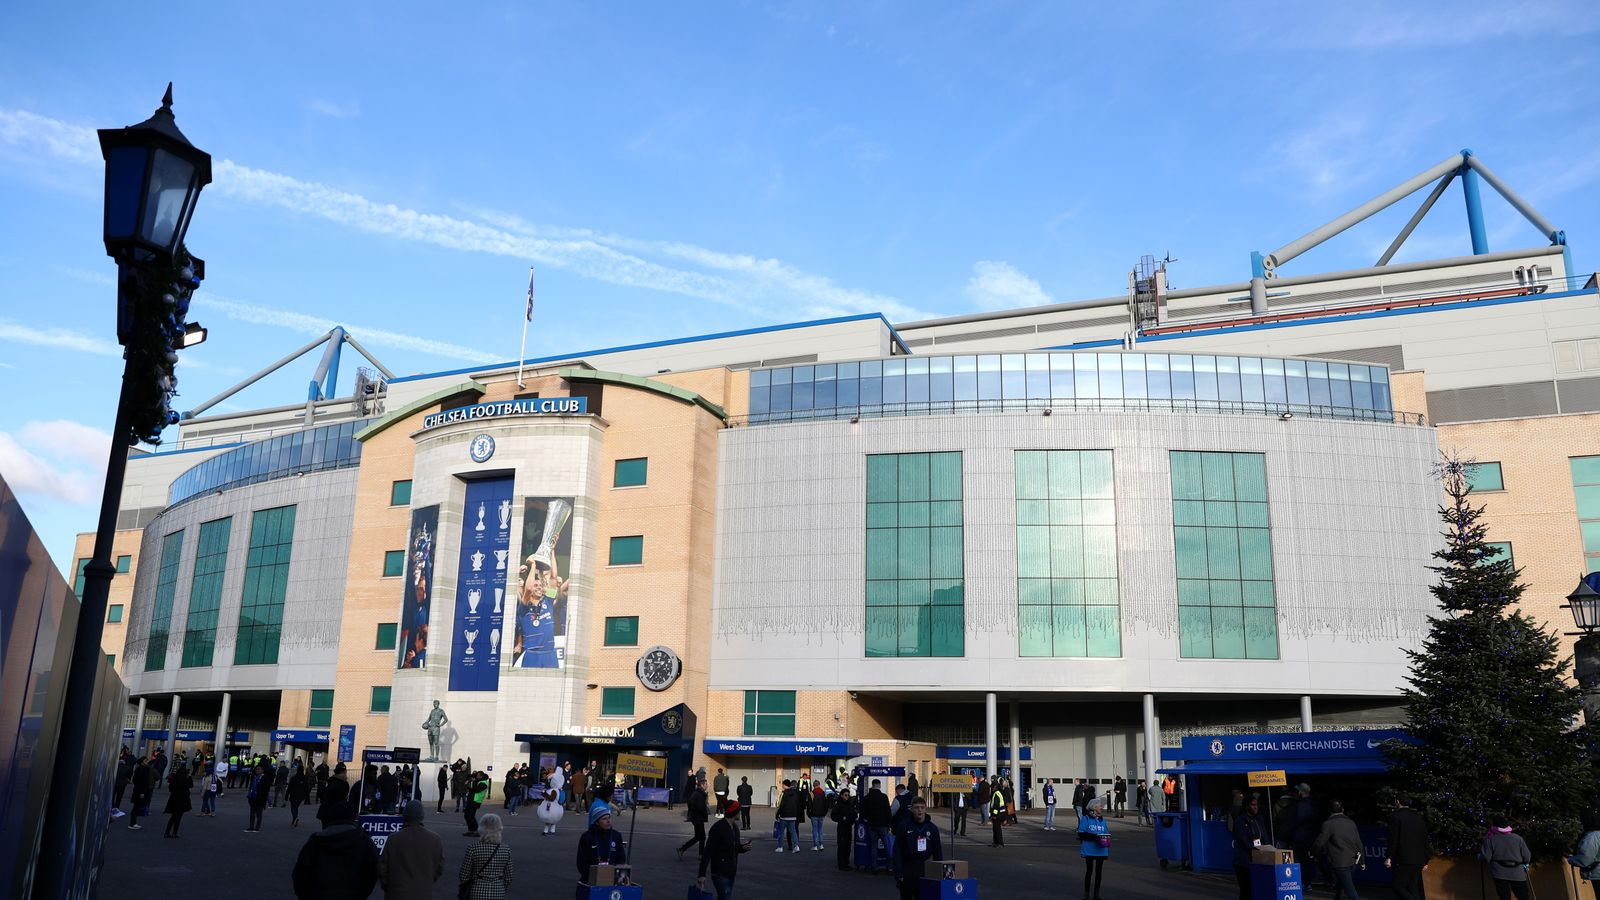 Chelsea vow to ban any Man Utd fans who made homophobic chants at Stamford Bridge